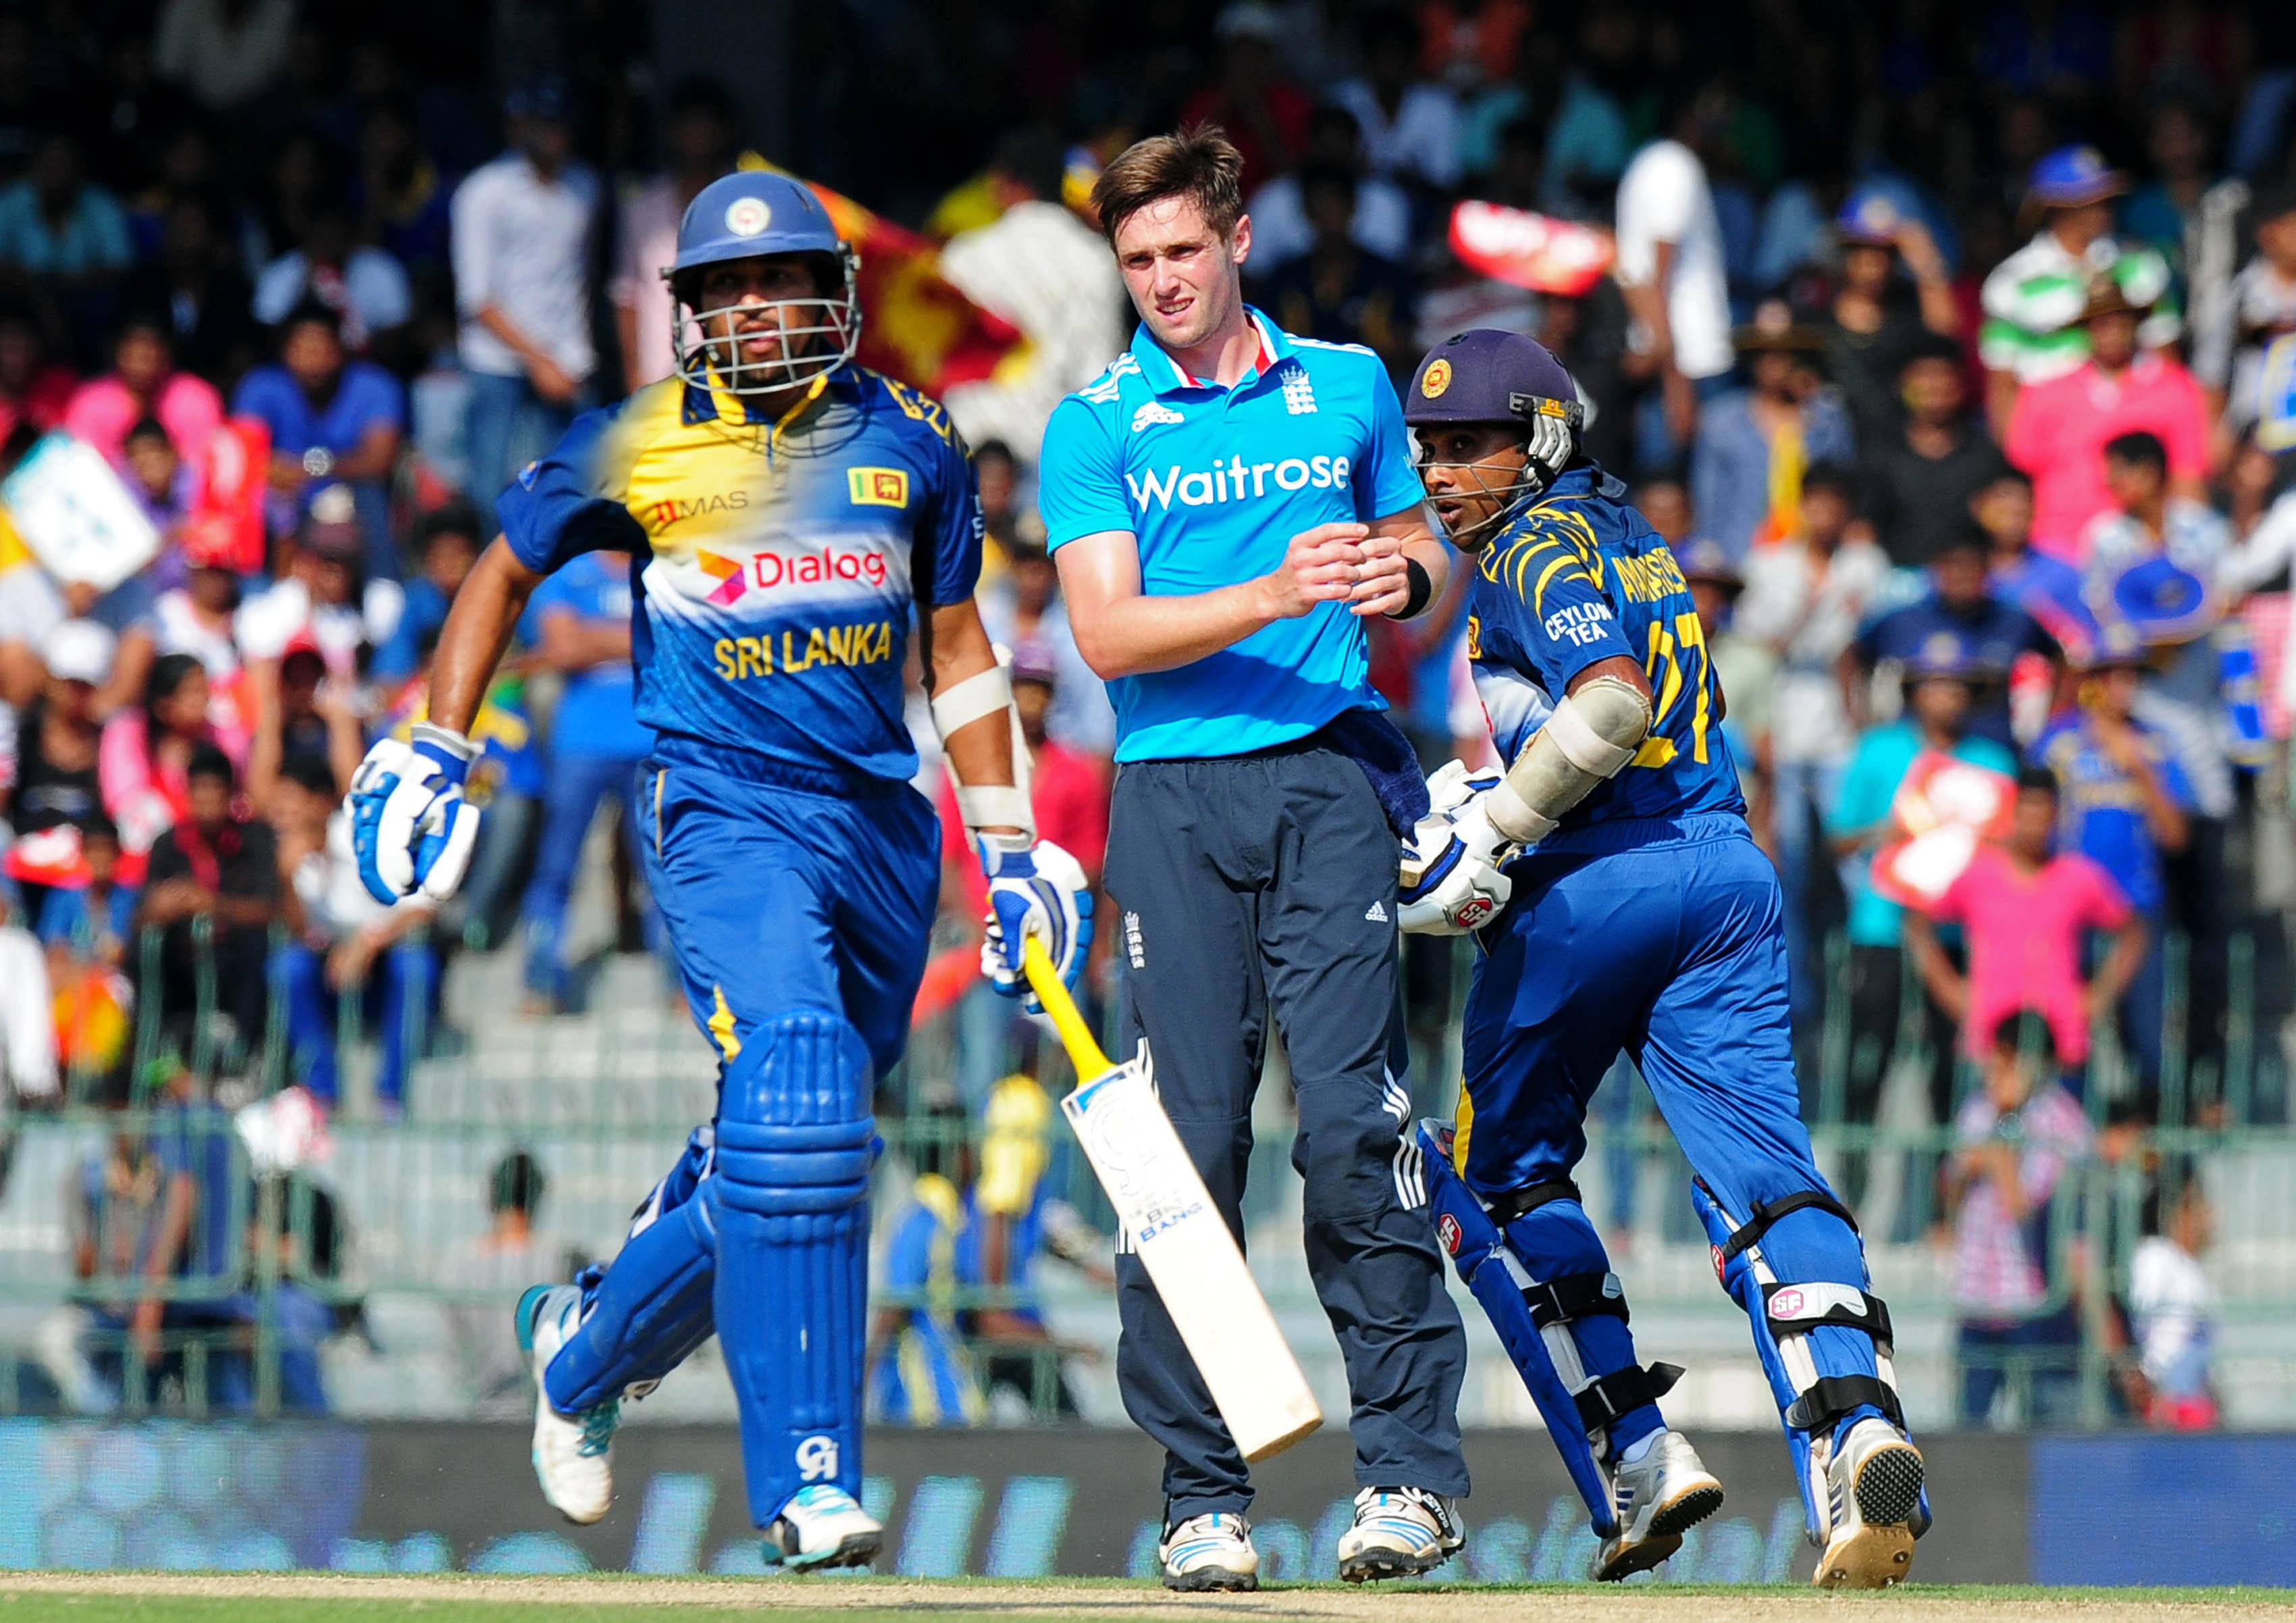 Dilshan batters England with bat and ball